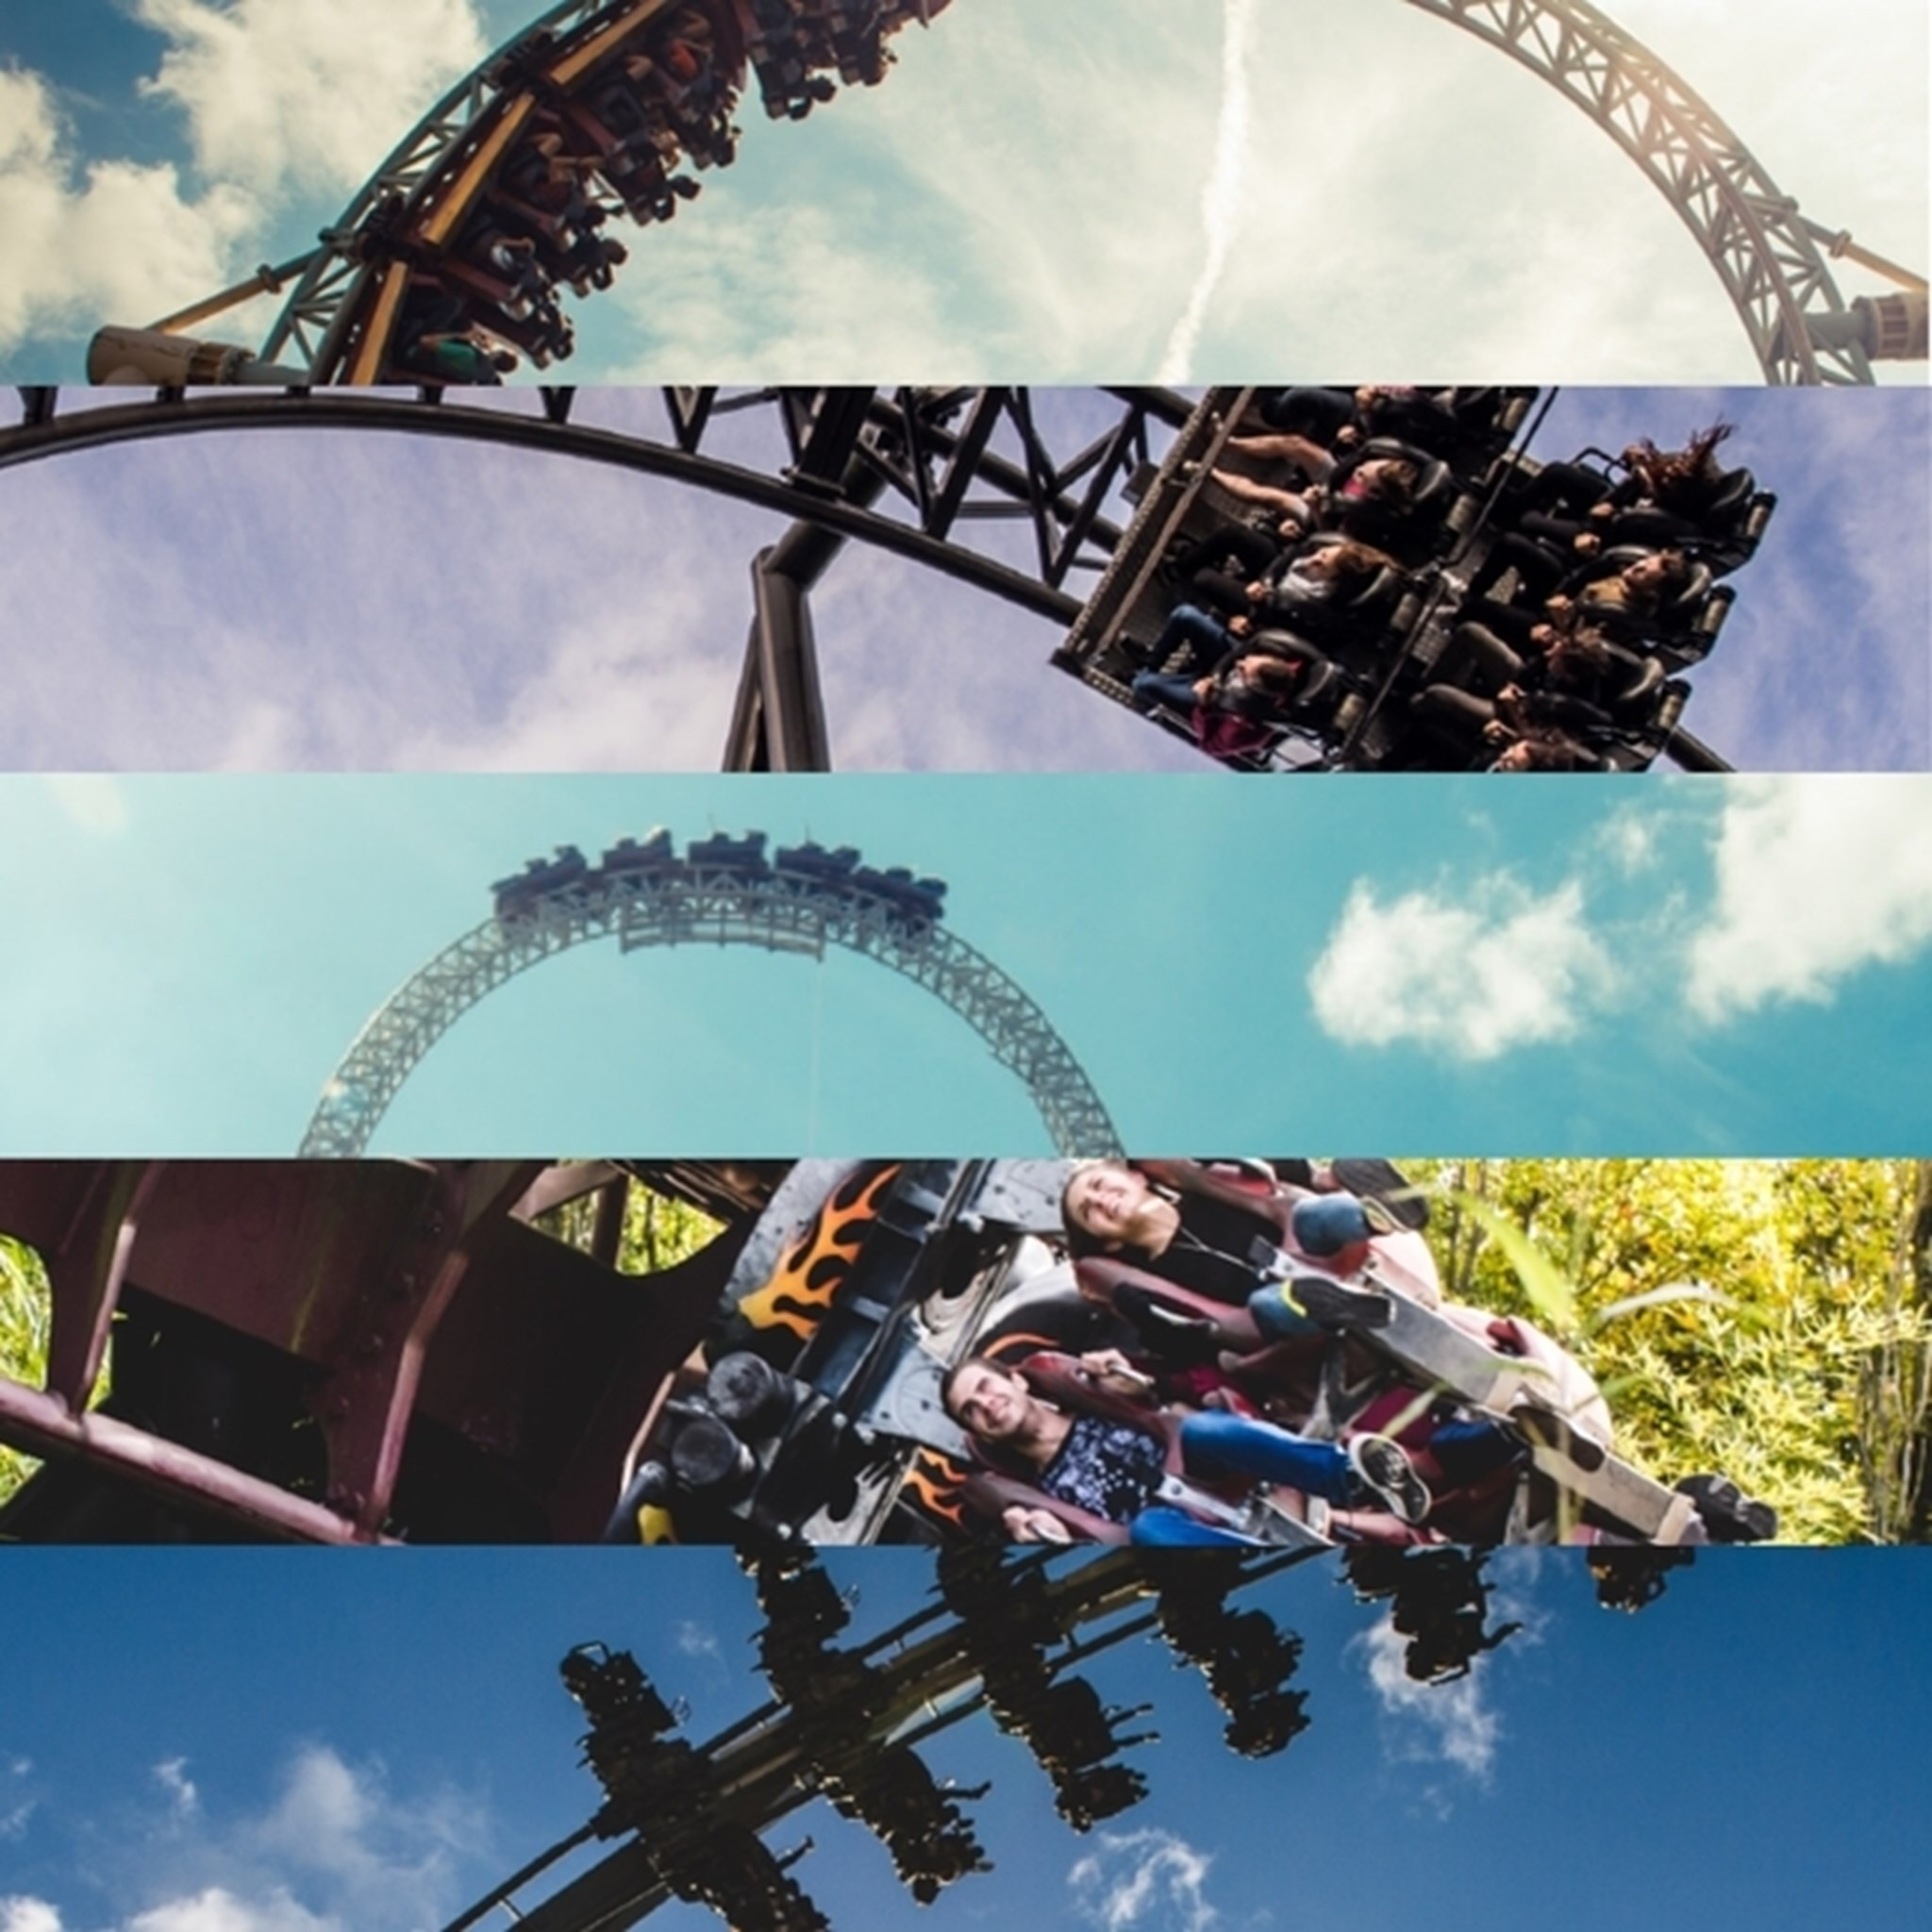 Vertical Collage Of Rollercoasters